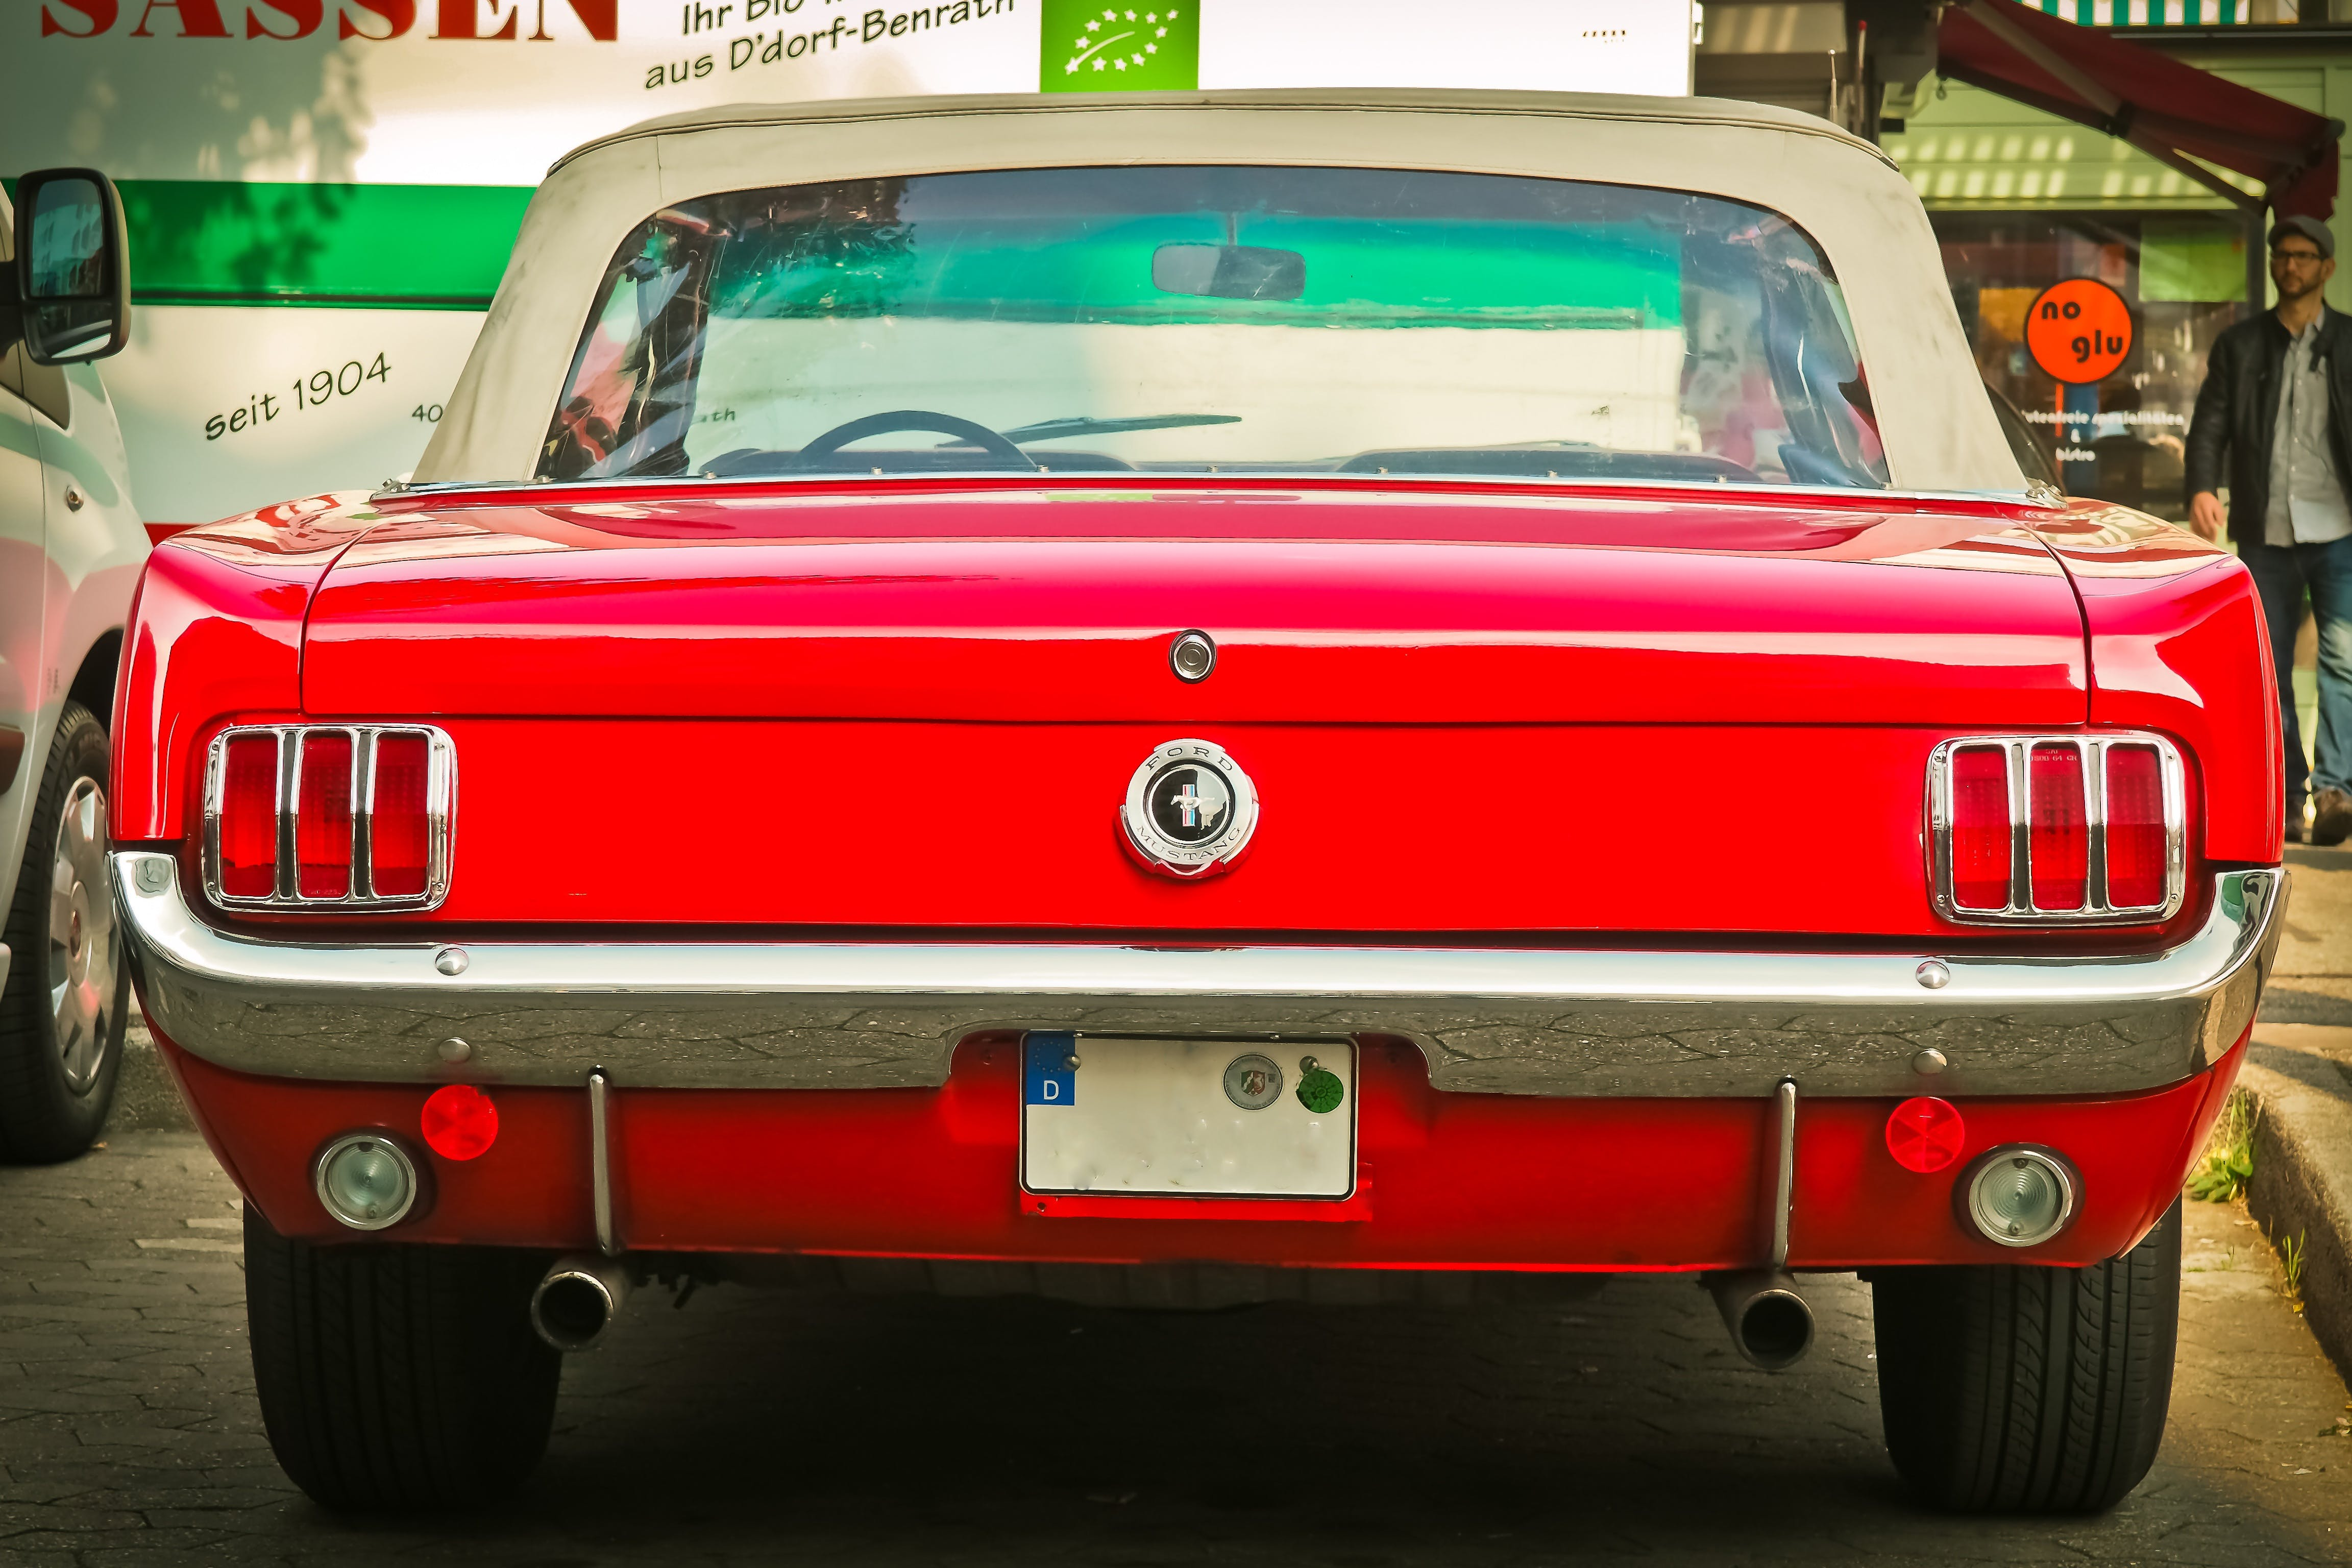 Close-up Photography of Red Vehicle